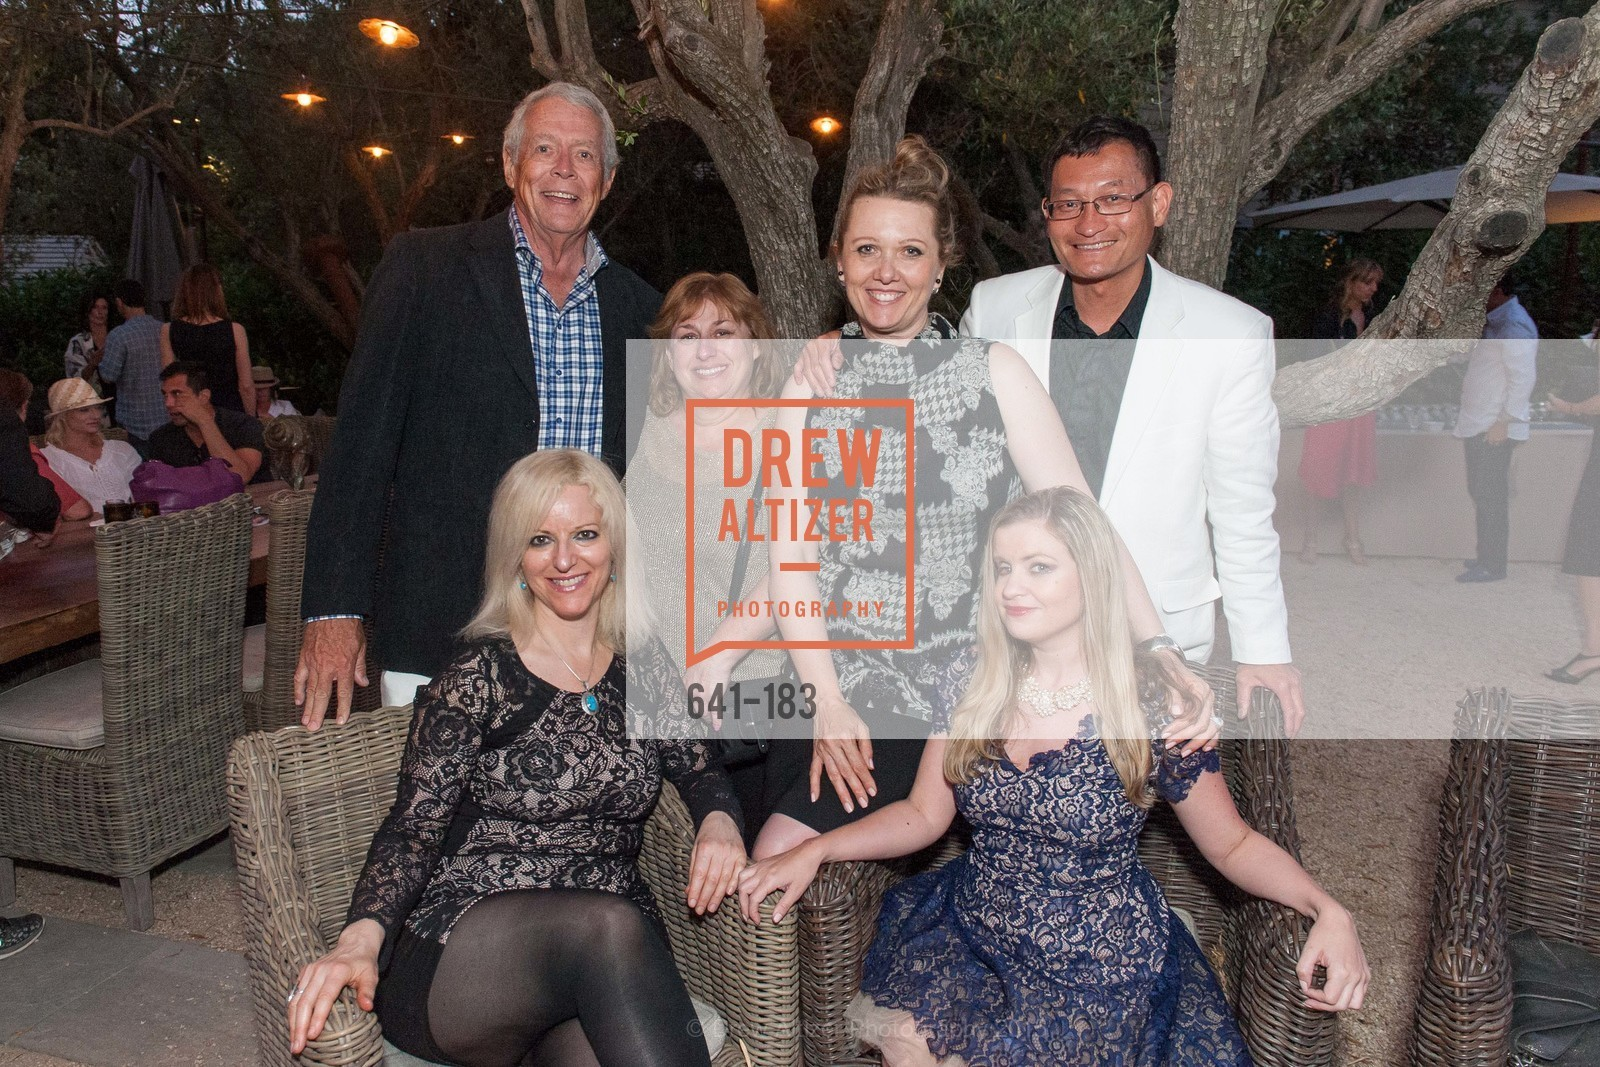 Anne Heit, Don Winters, Esfir Shrayber, Svetlana Whitener, Julie Hall, Eric Dew, Oyster Cup Polo Tournament Preview Party Hosted by Cerro Pampa Polo Club and Stick & Ball, Ma(i)sonry. 6711 Washington St, June 25th, 2015,Drew Altizer, Drew Altizer Photography, full-service agency, private events, San Francisco photographer, photographer california